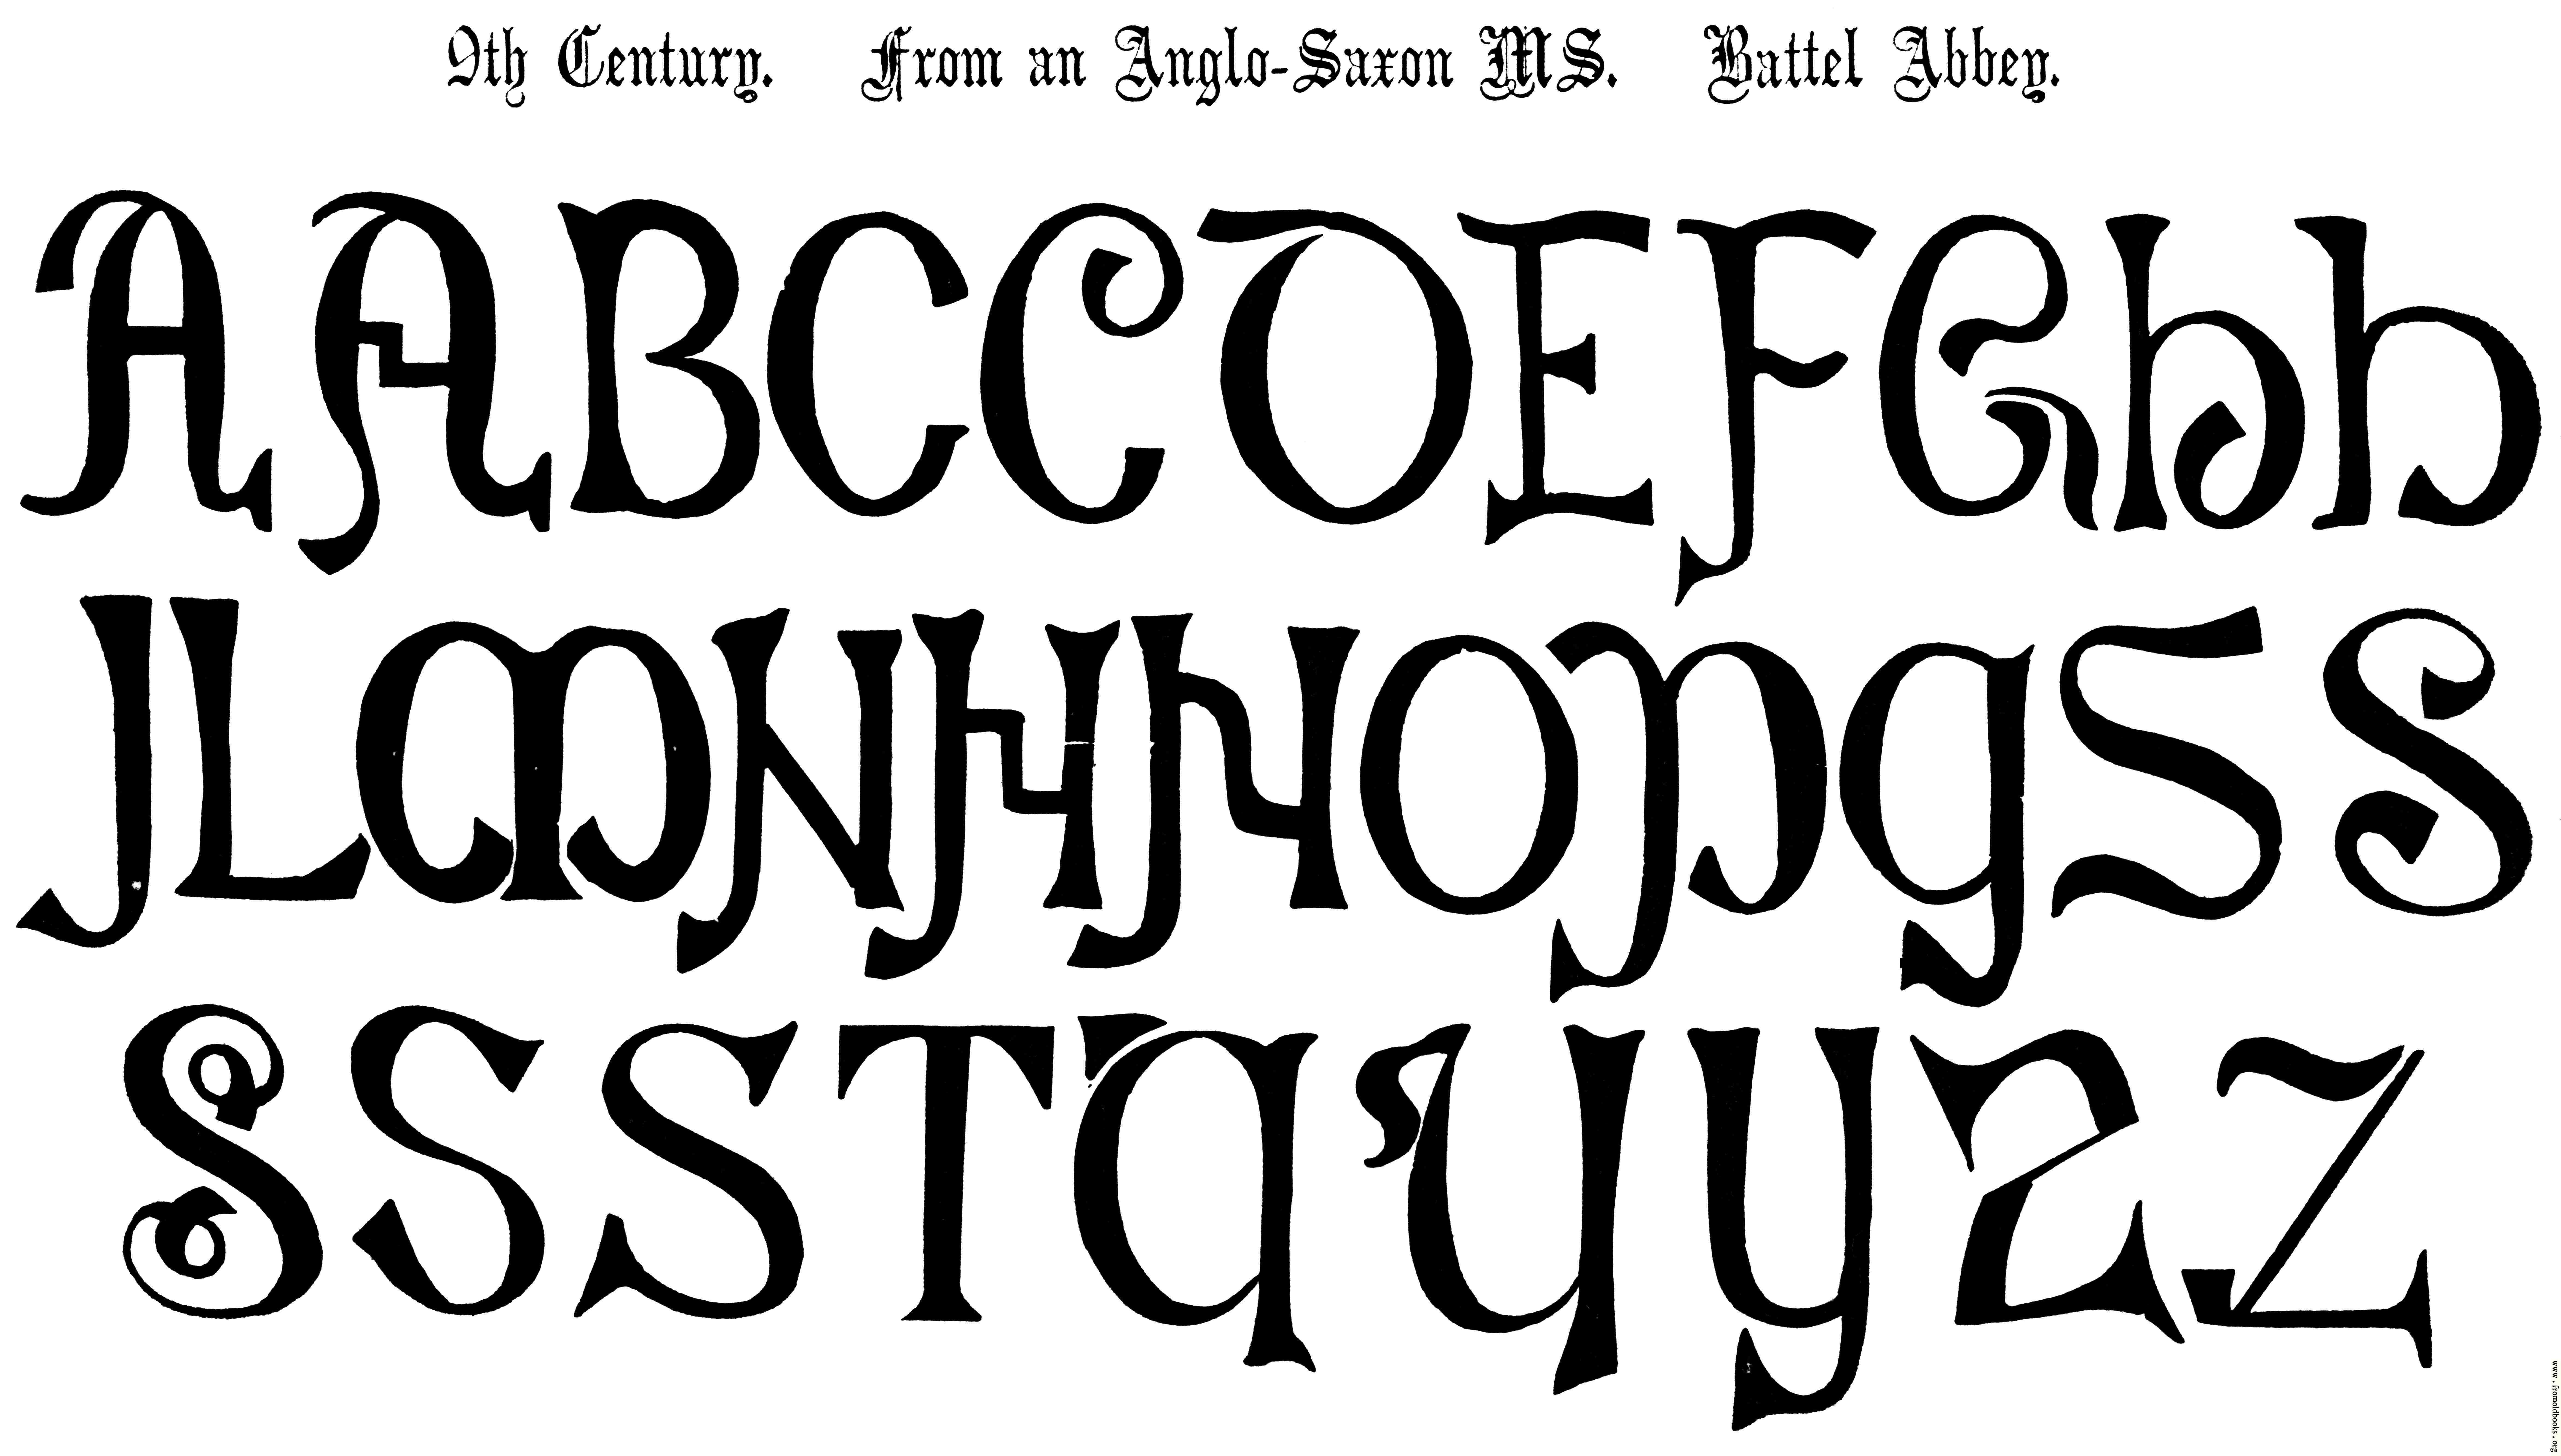 [Picture: 4.—9th Century. From an Anglo-Saxon MS.  Battel Abbey.]